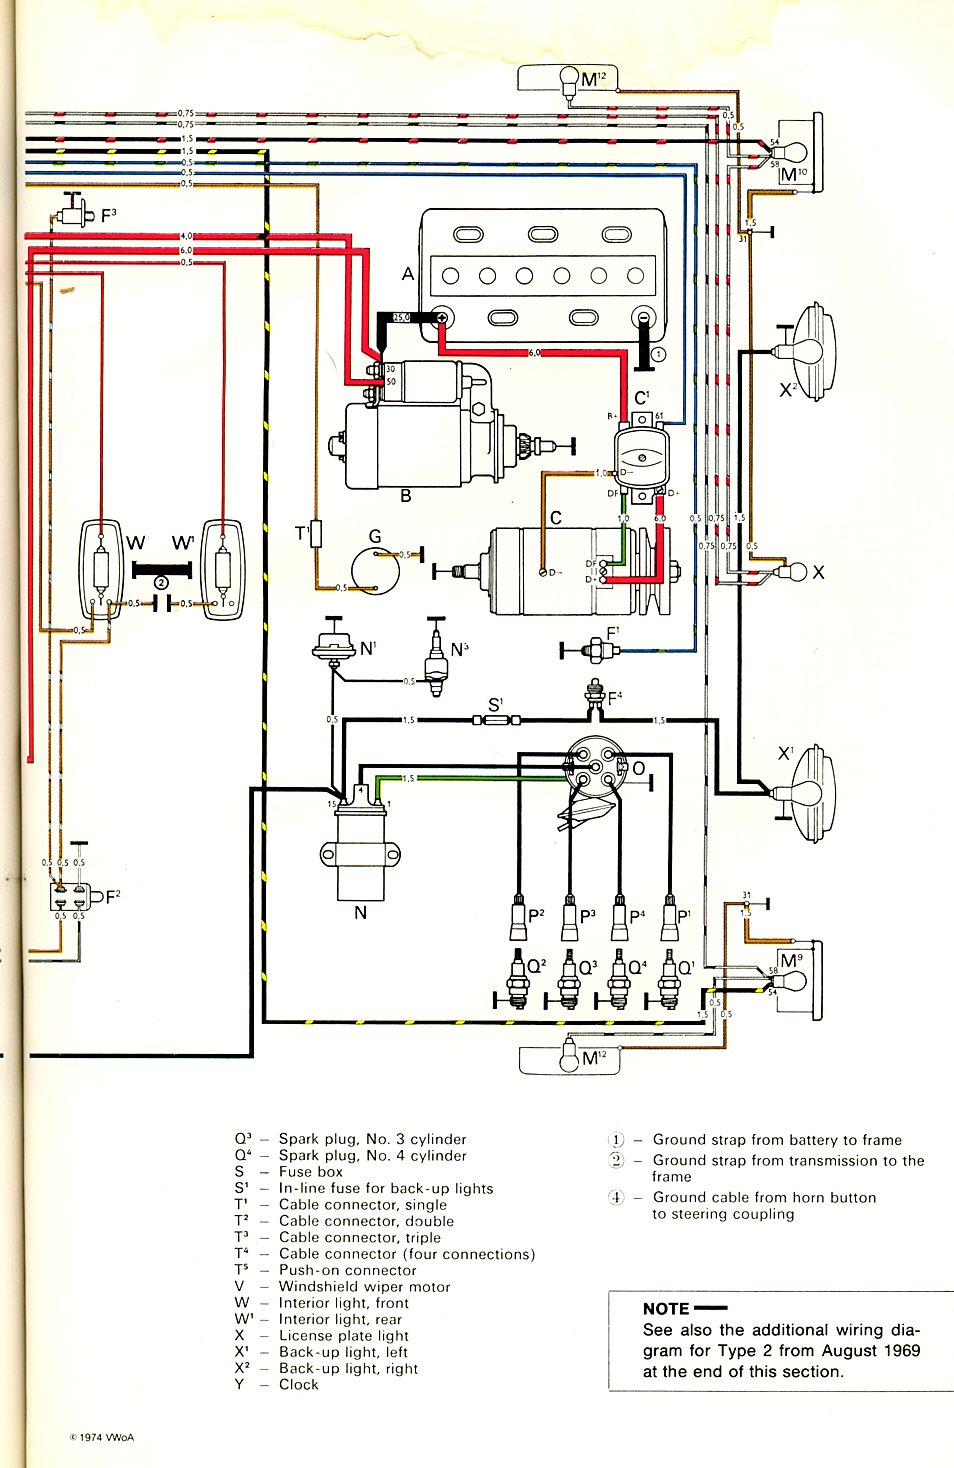 Type 2 Wiring Diagrams 72 Chevy Alternator Diagram